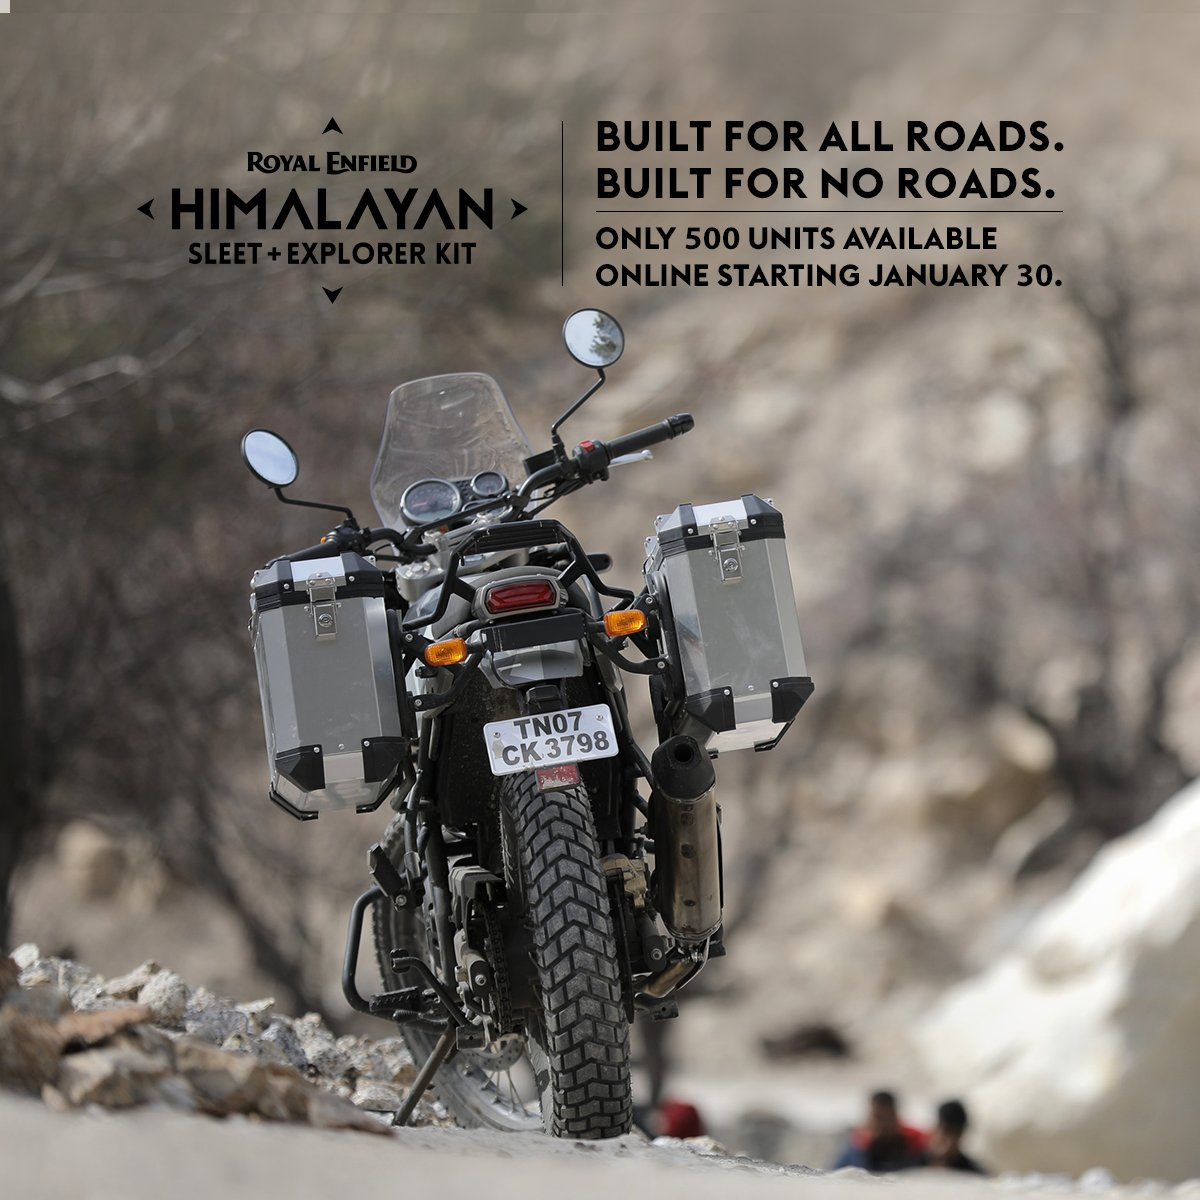 Royal Enfield On Twitter Built For All Roads Built For No Roads